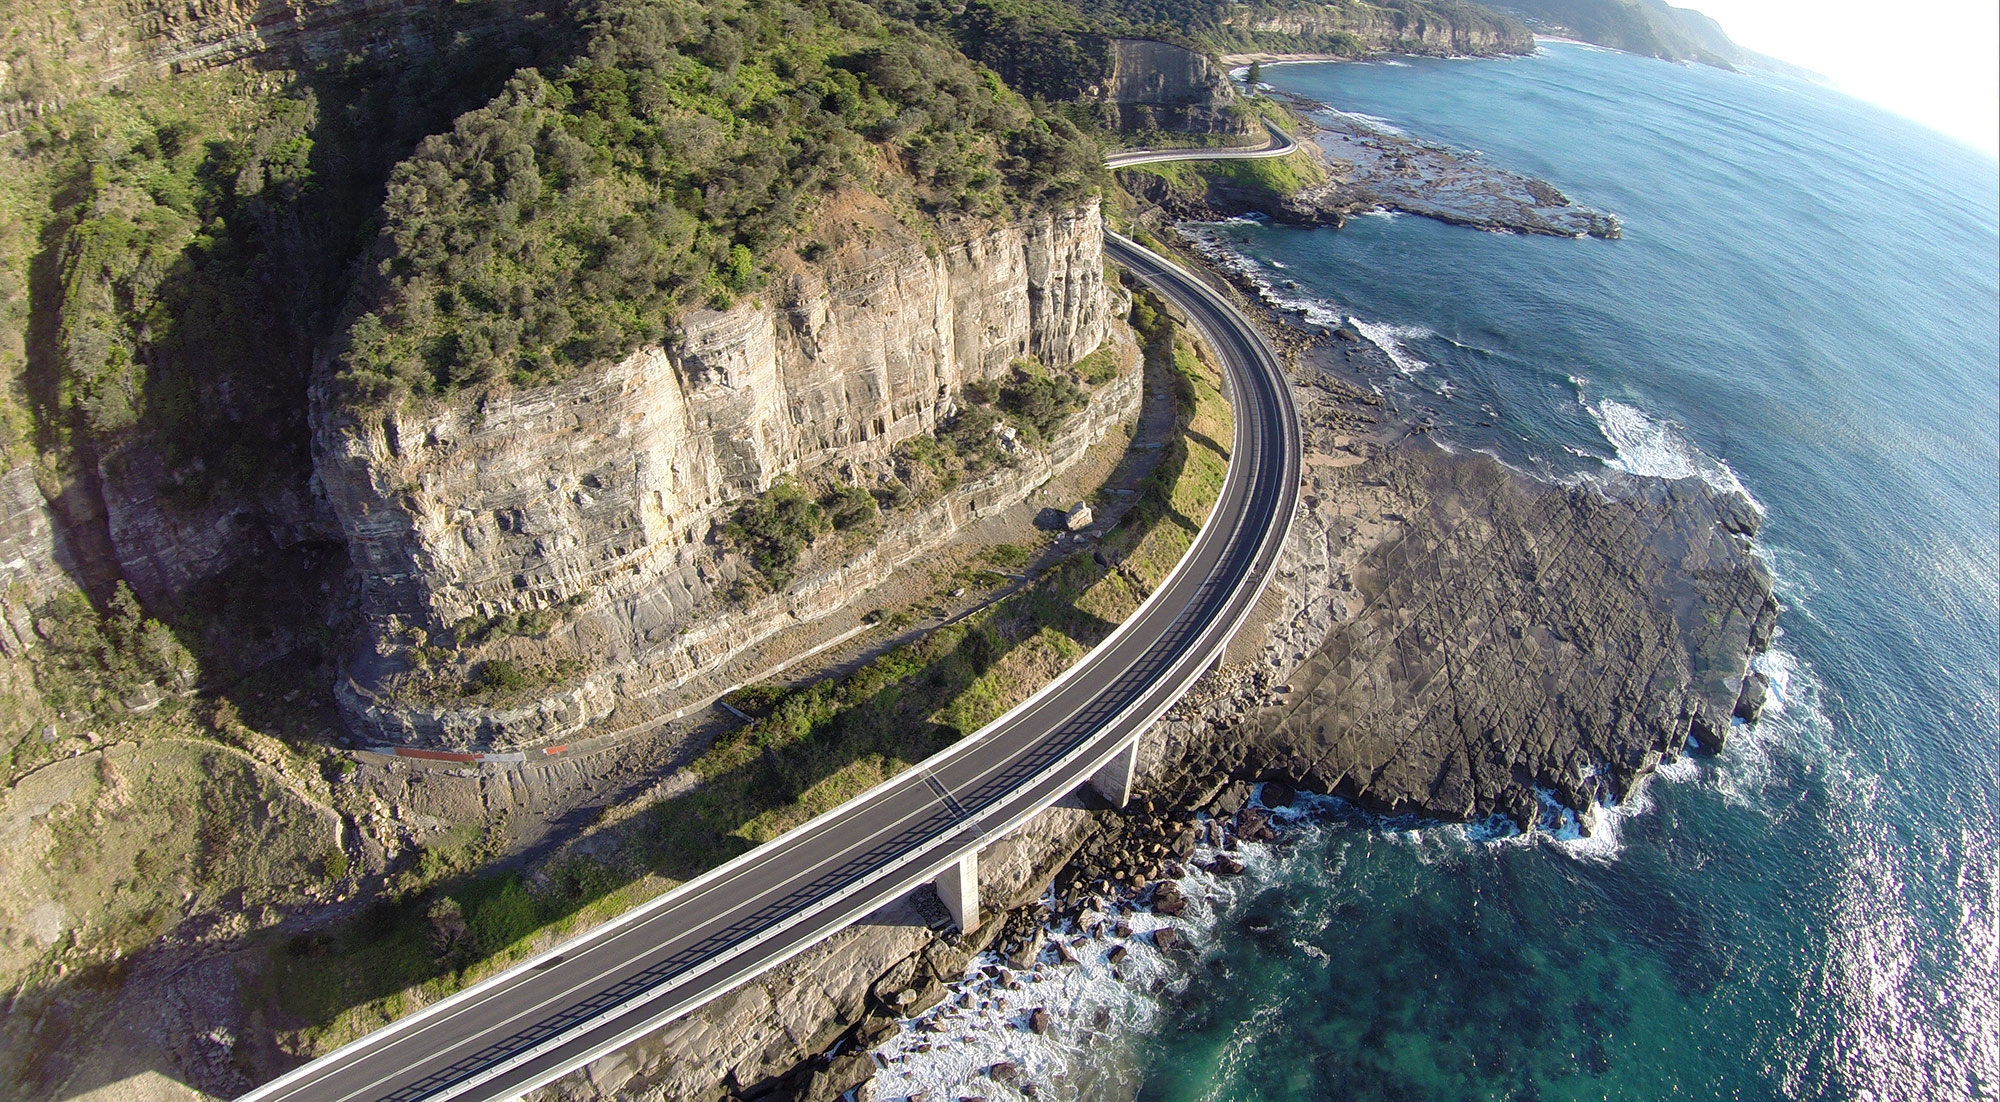 SEACLIFFE BRIDGE